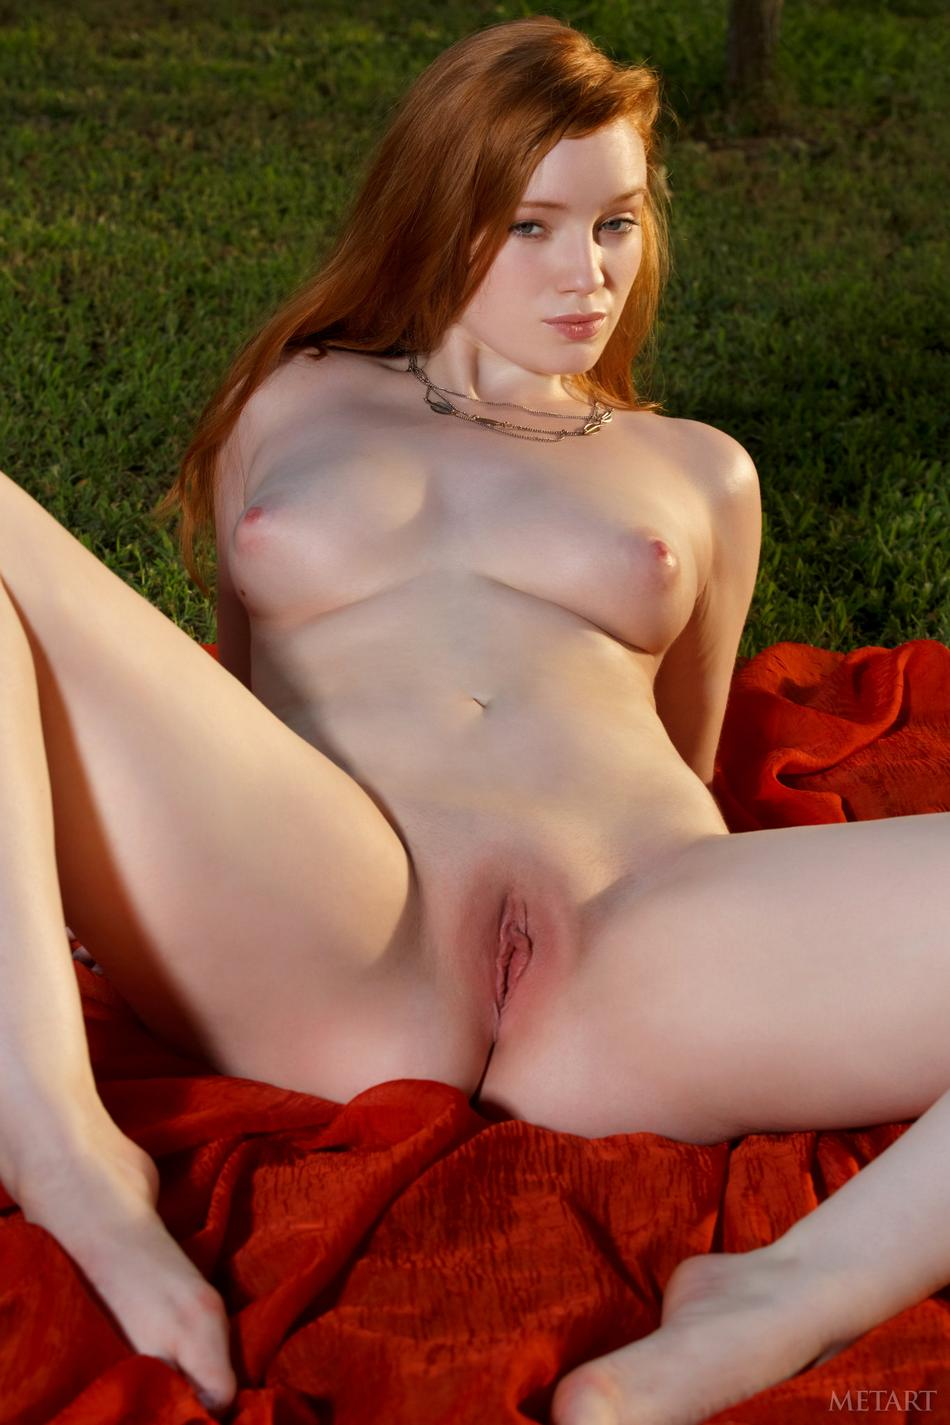 Phrase necessary beautiful nude red headed women necessary